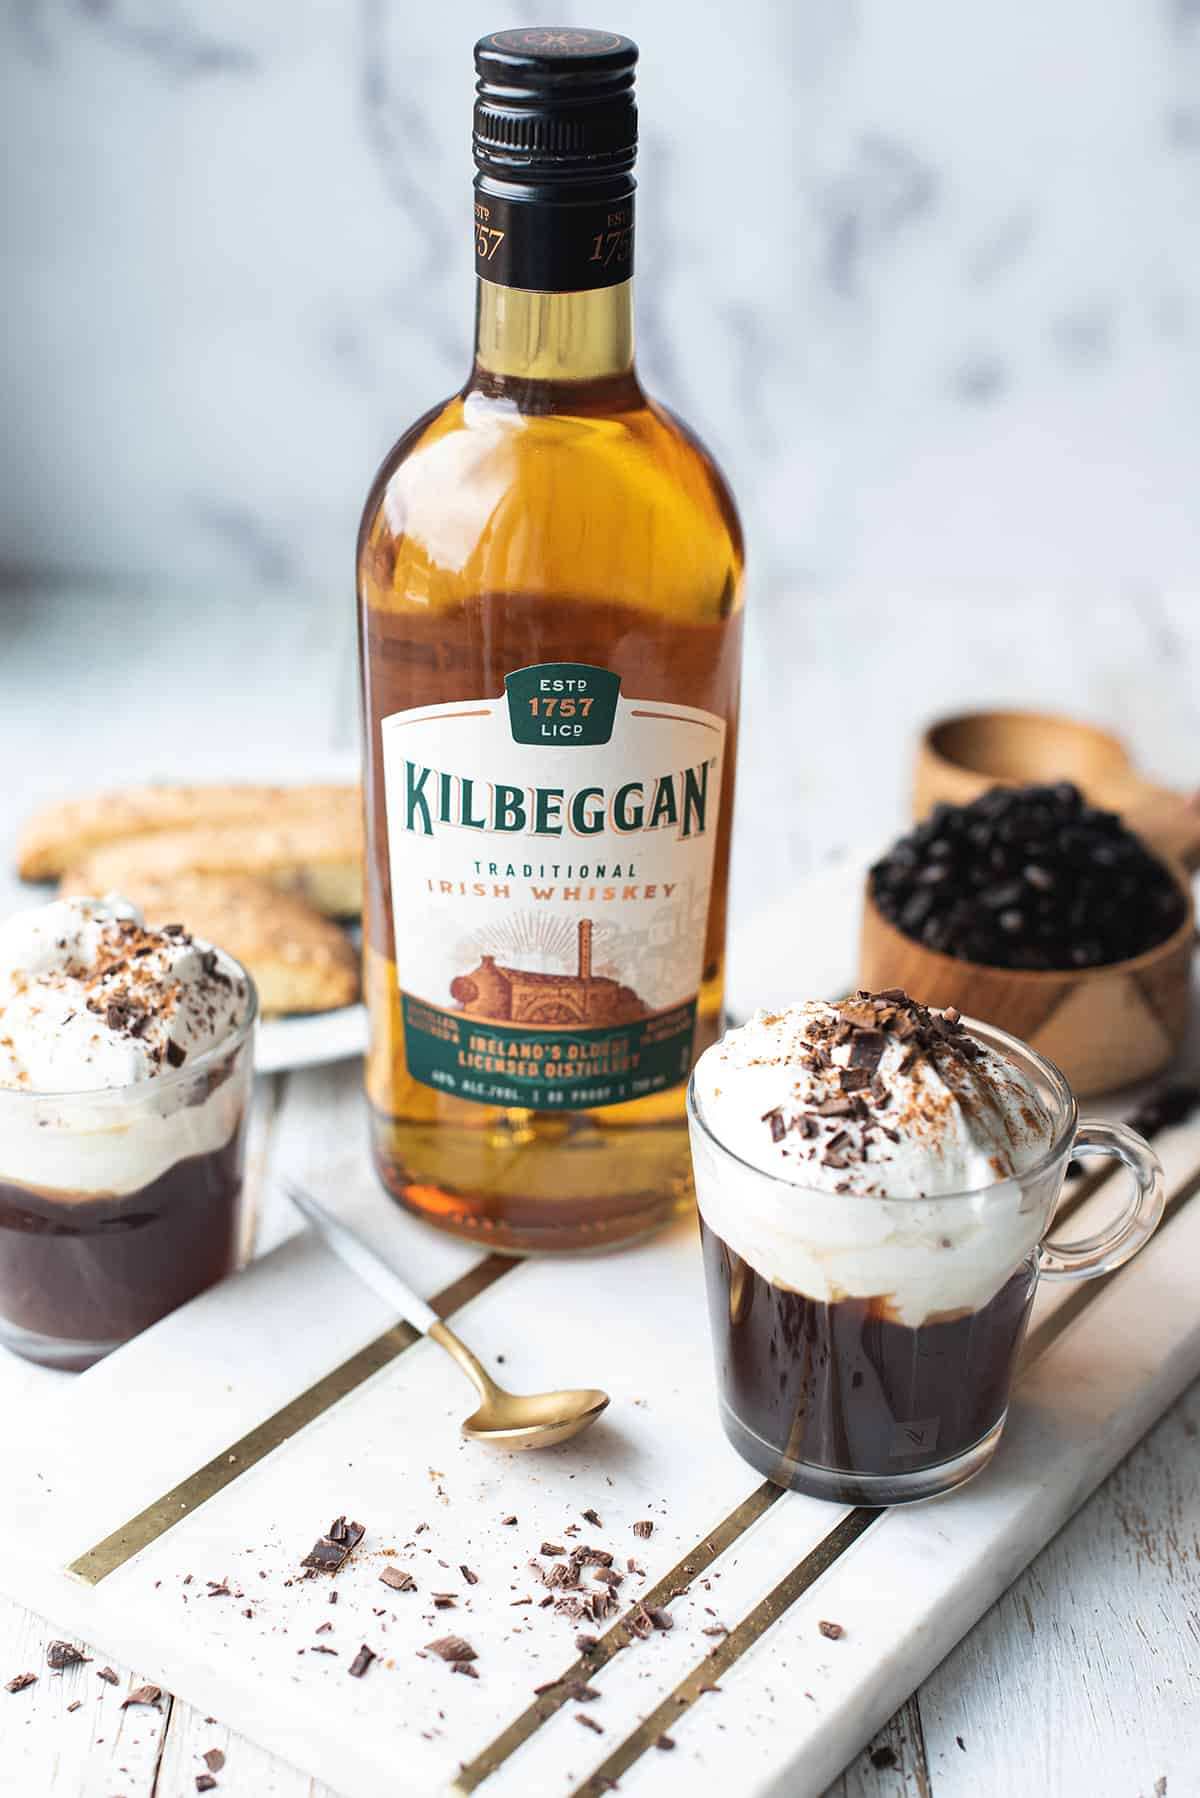 Irish coffee in mug with Kilbeggan Whiskey